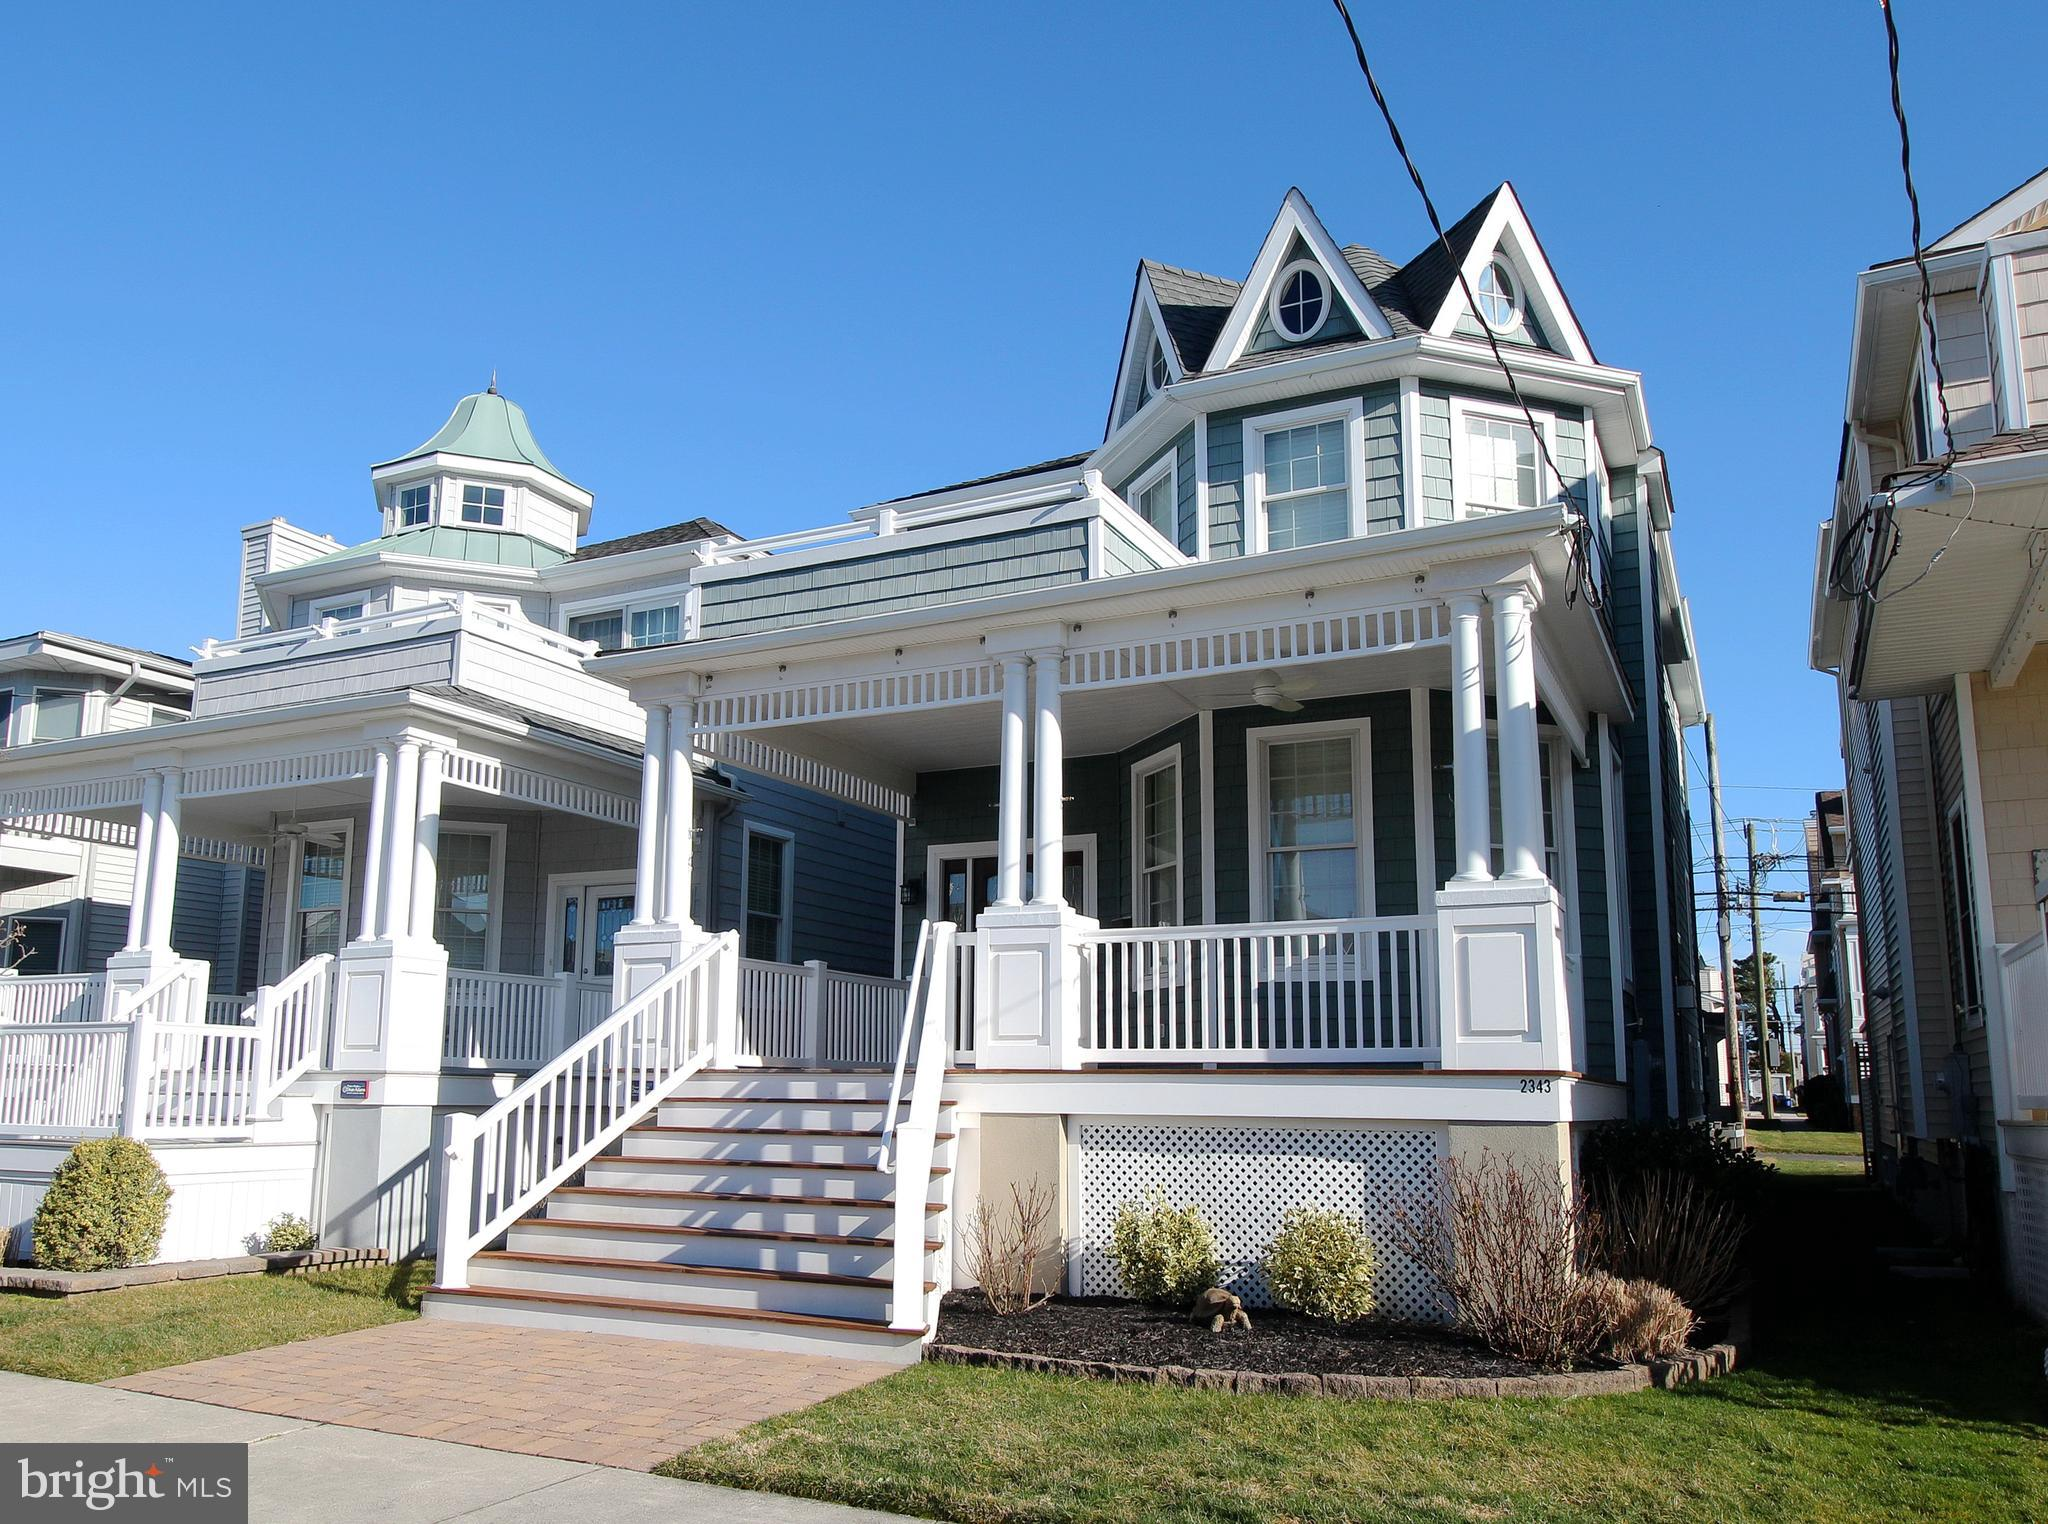 2343 ASBURY AVENUE, OCEAN CITY, NJ 08226